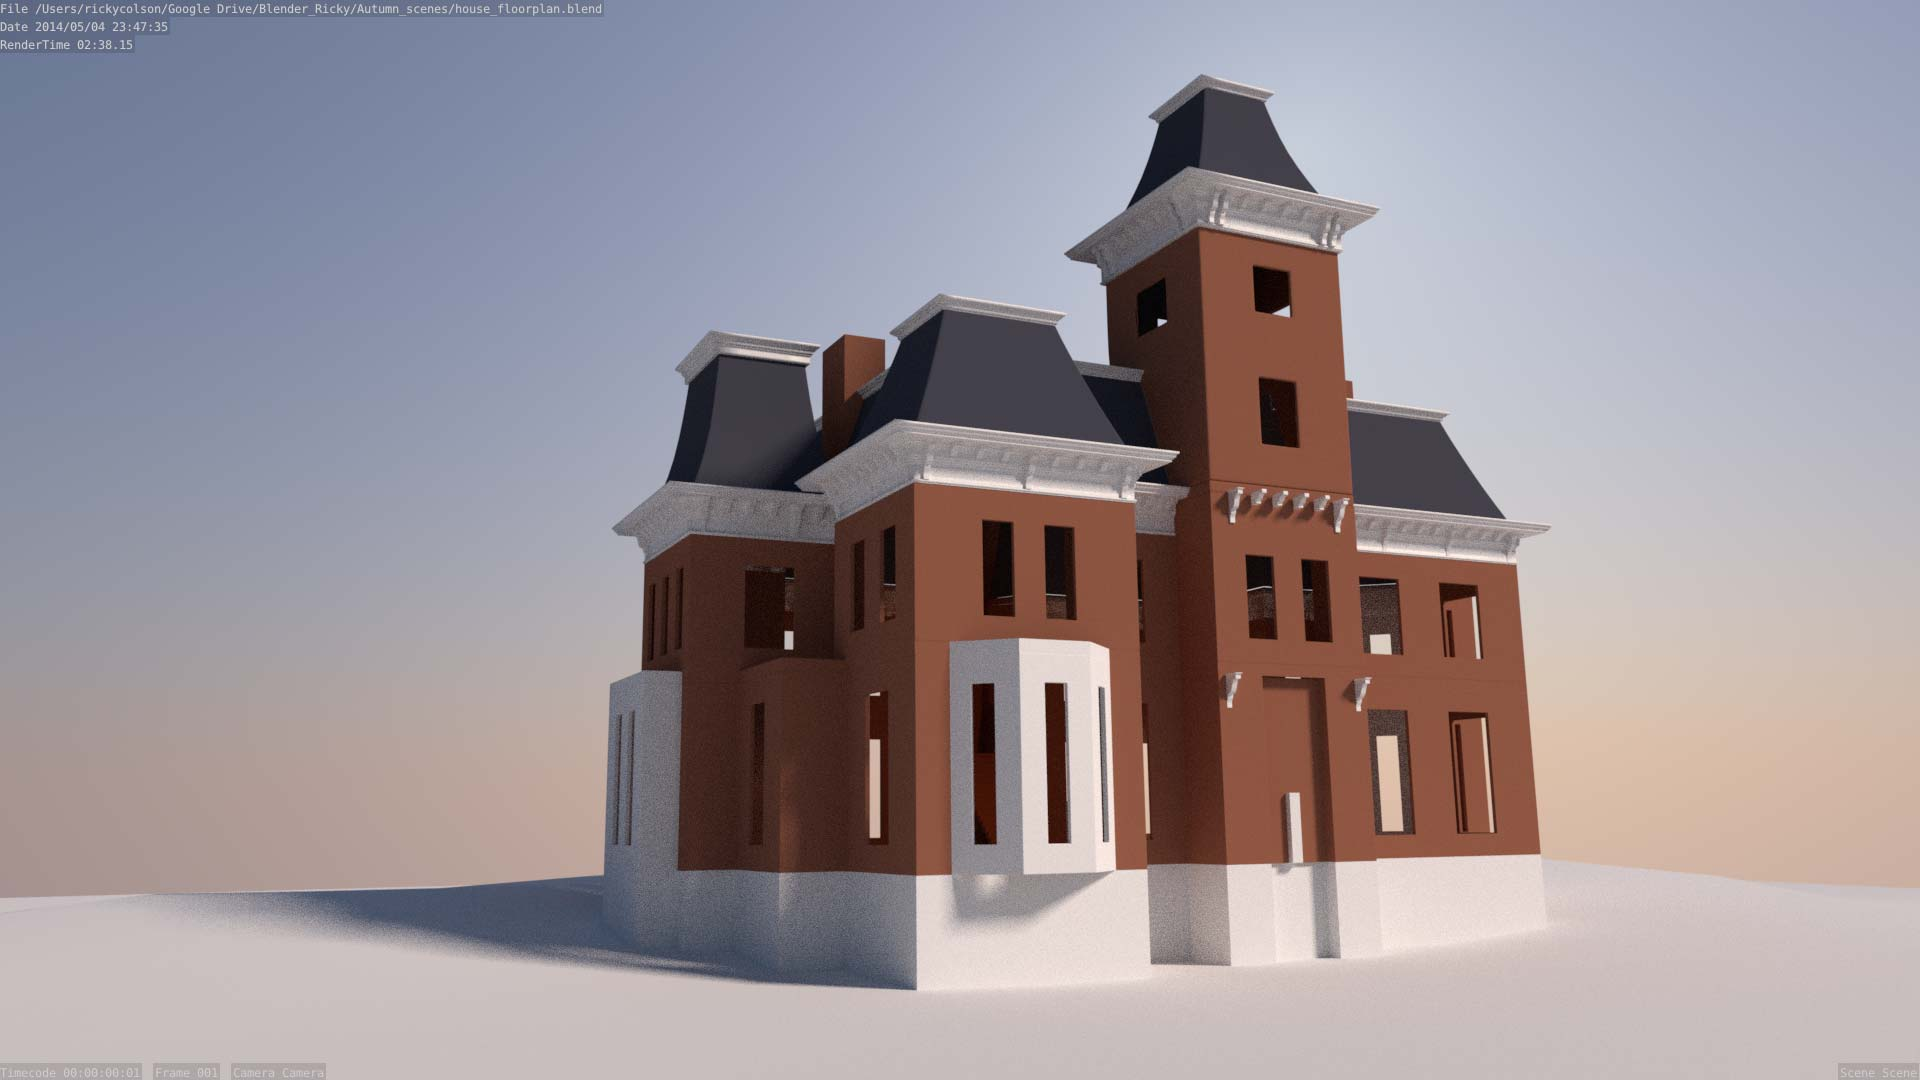 3d model of Second Empire style mansion